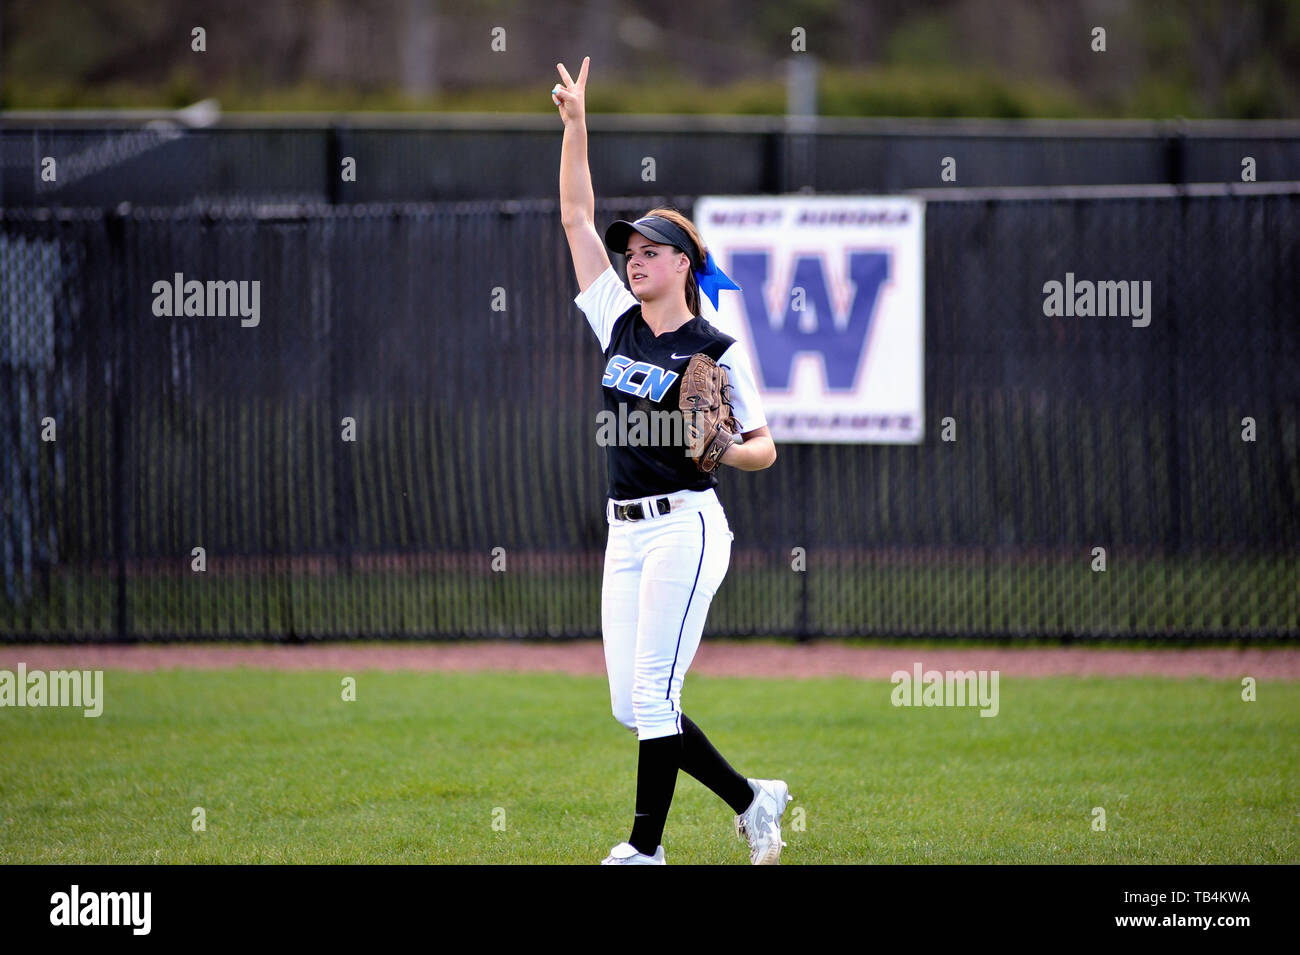 An outfielder exchanging hand signals and communicating with teammates that there are two outs in the inning. USA. - Stock Image